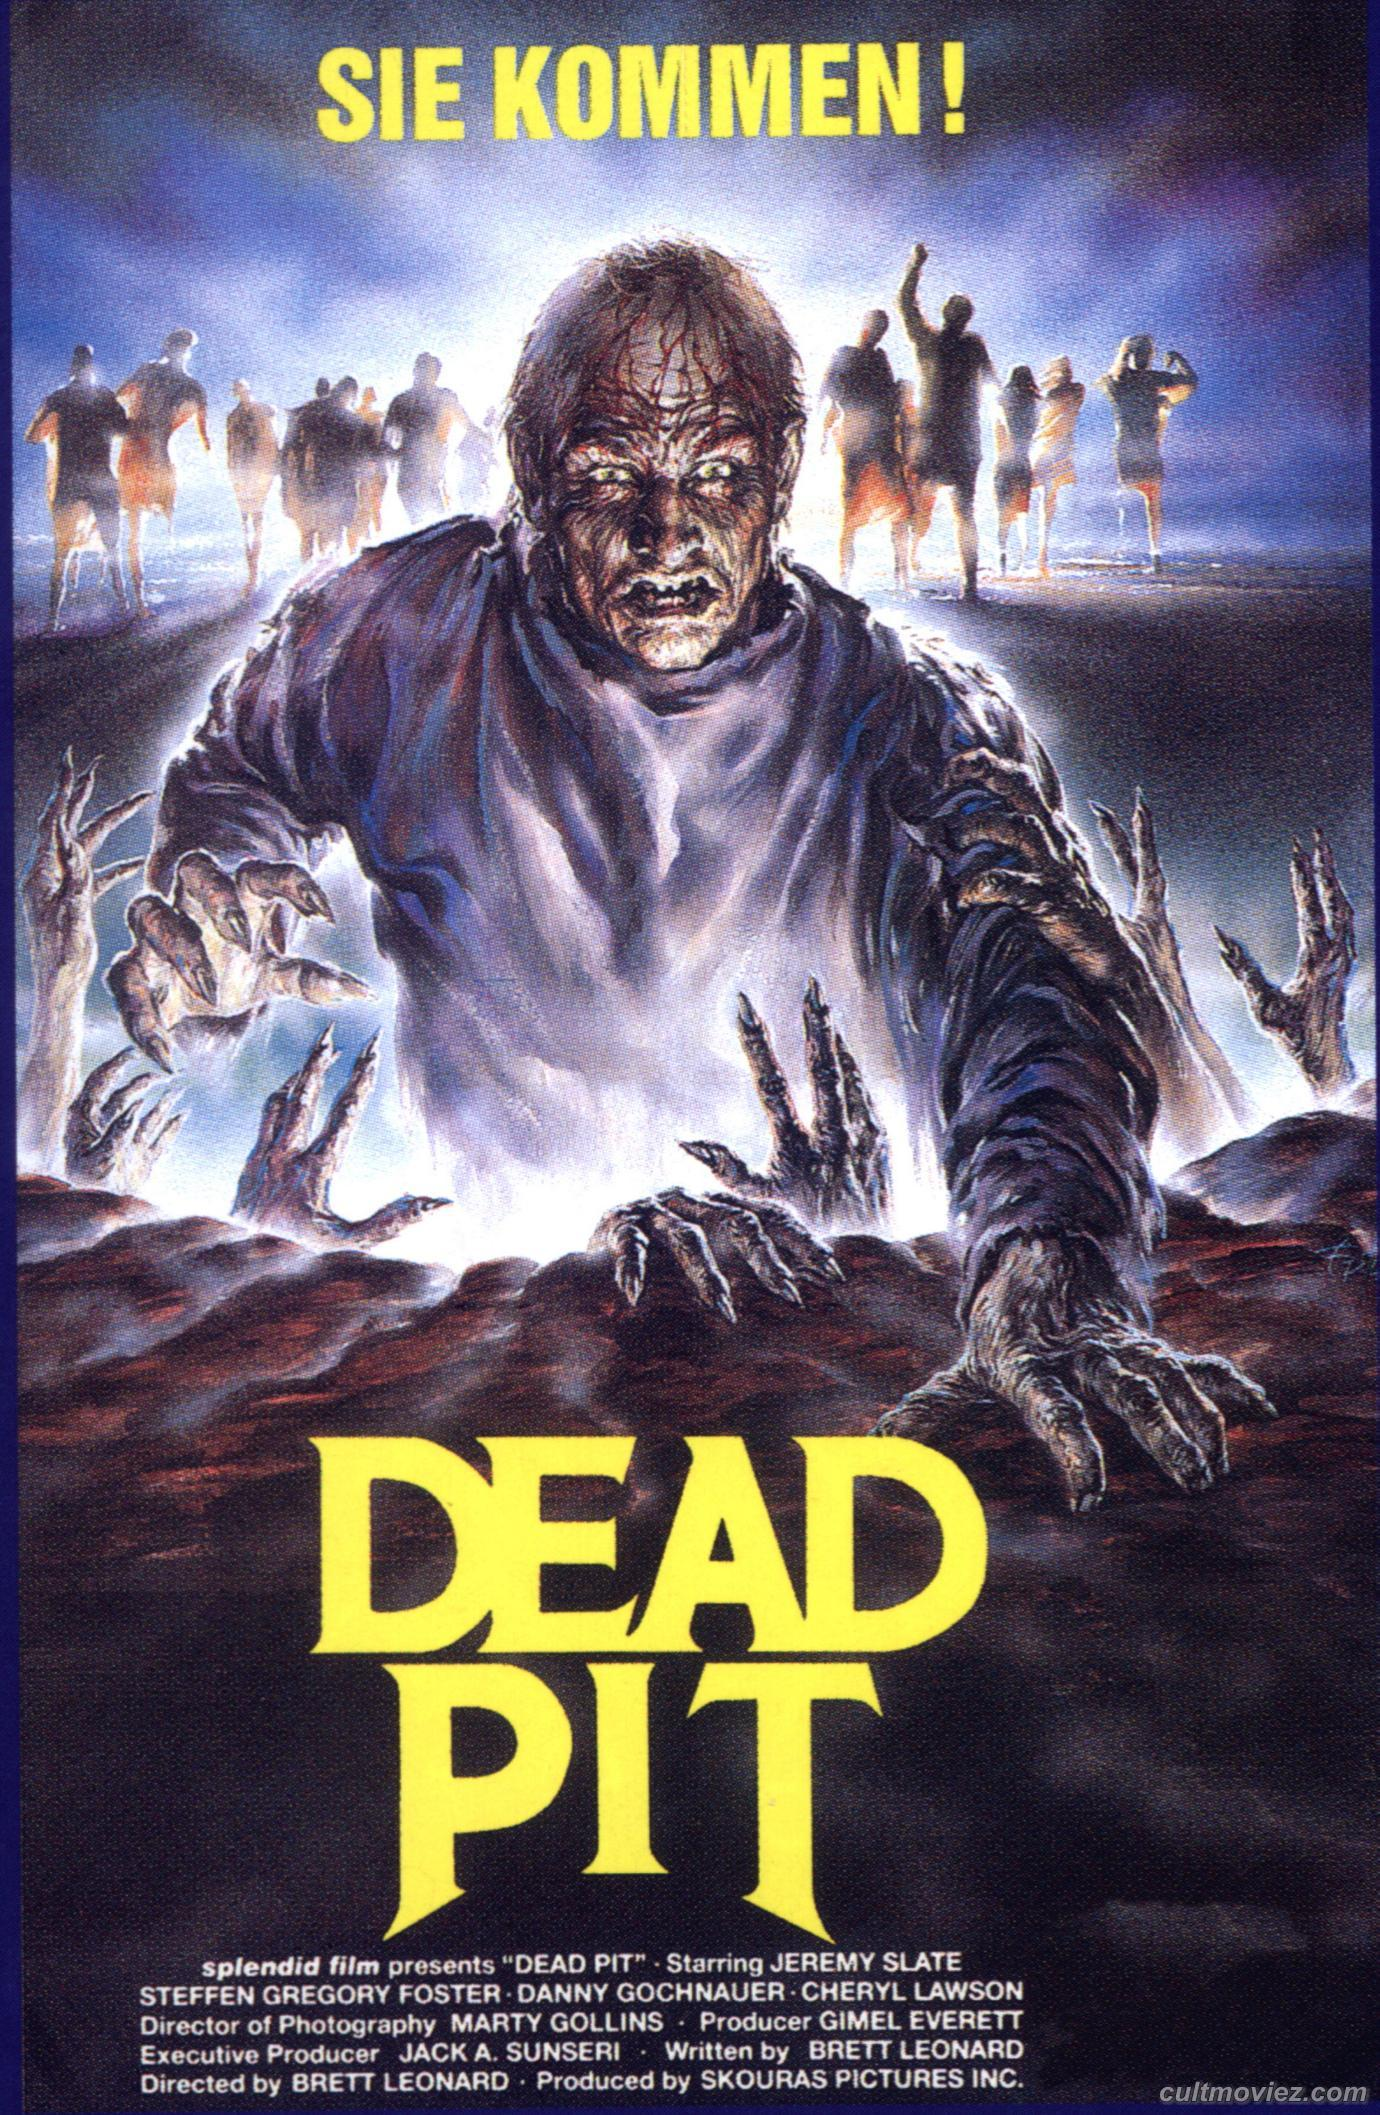 poster the dead pit - Retro Gallery Archive (Full Size)